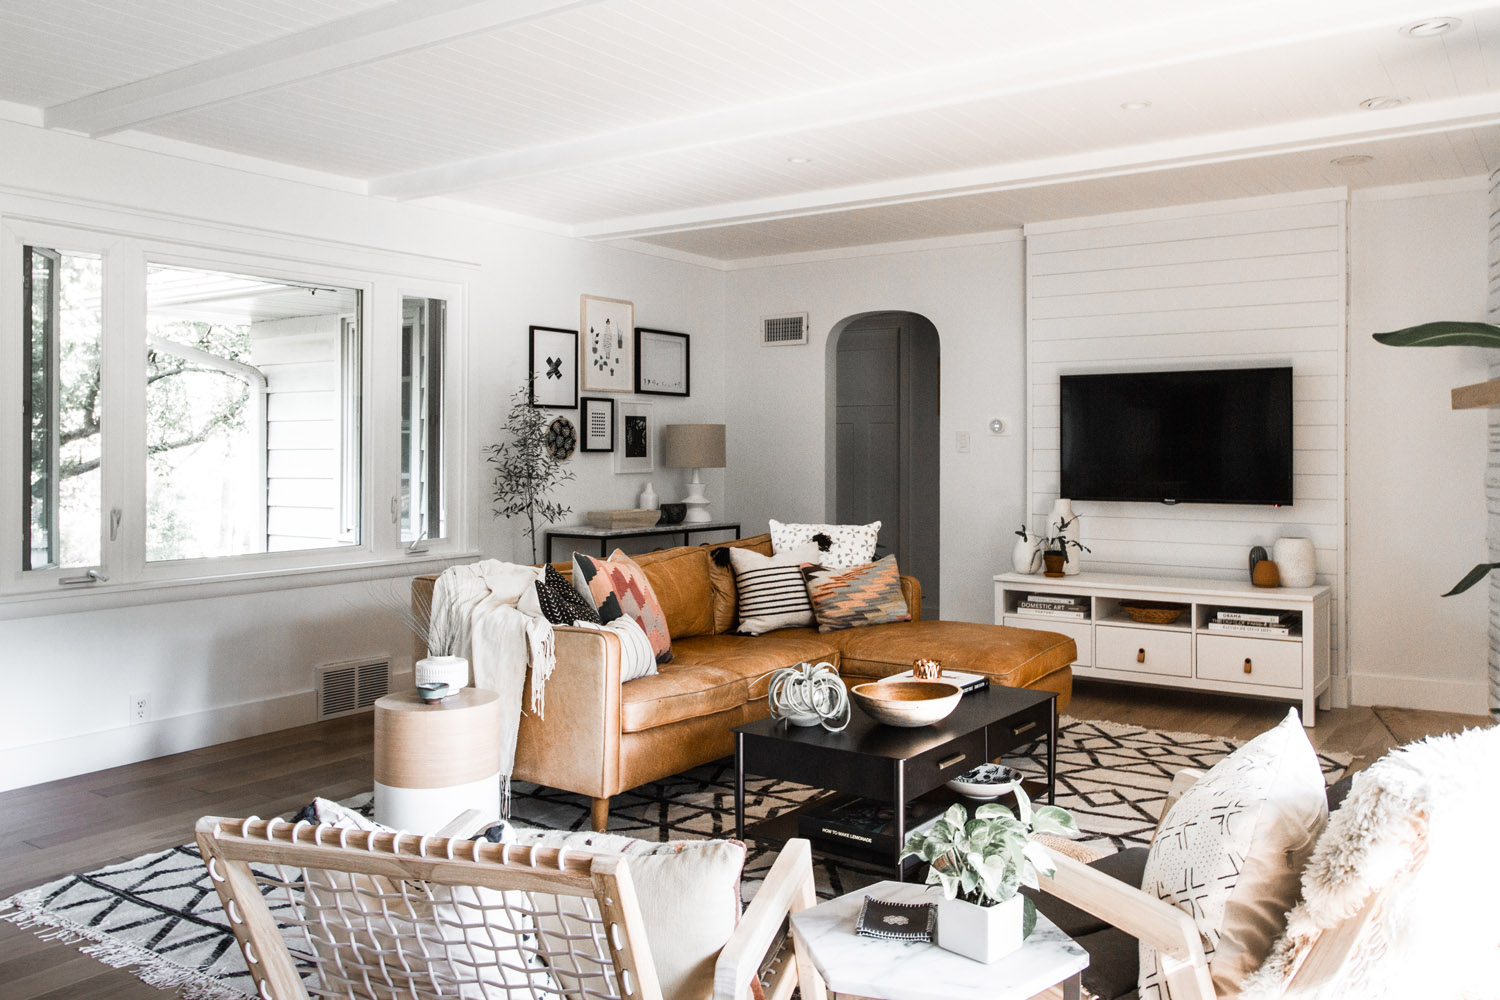 west elm living rooms room design 2018 lessons learned from a renovation front main midwest malibu cottage reveal